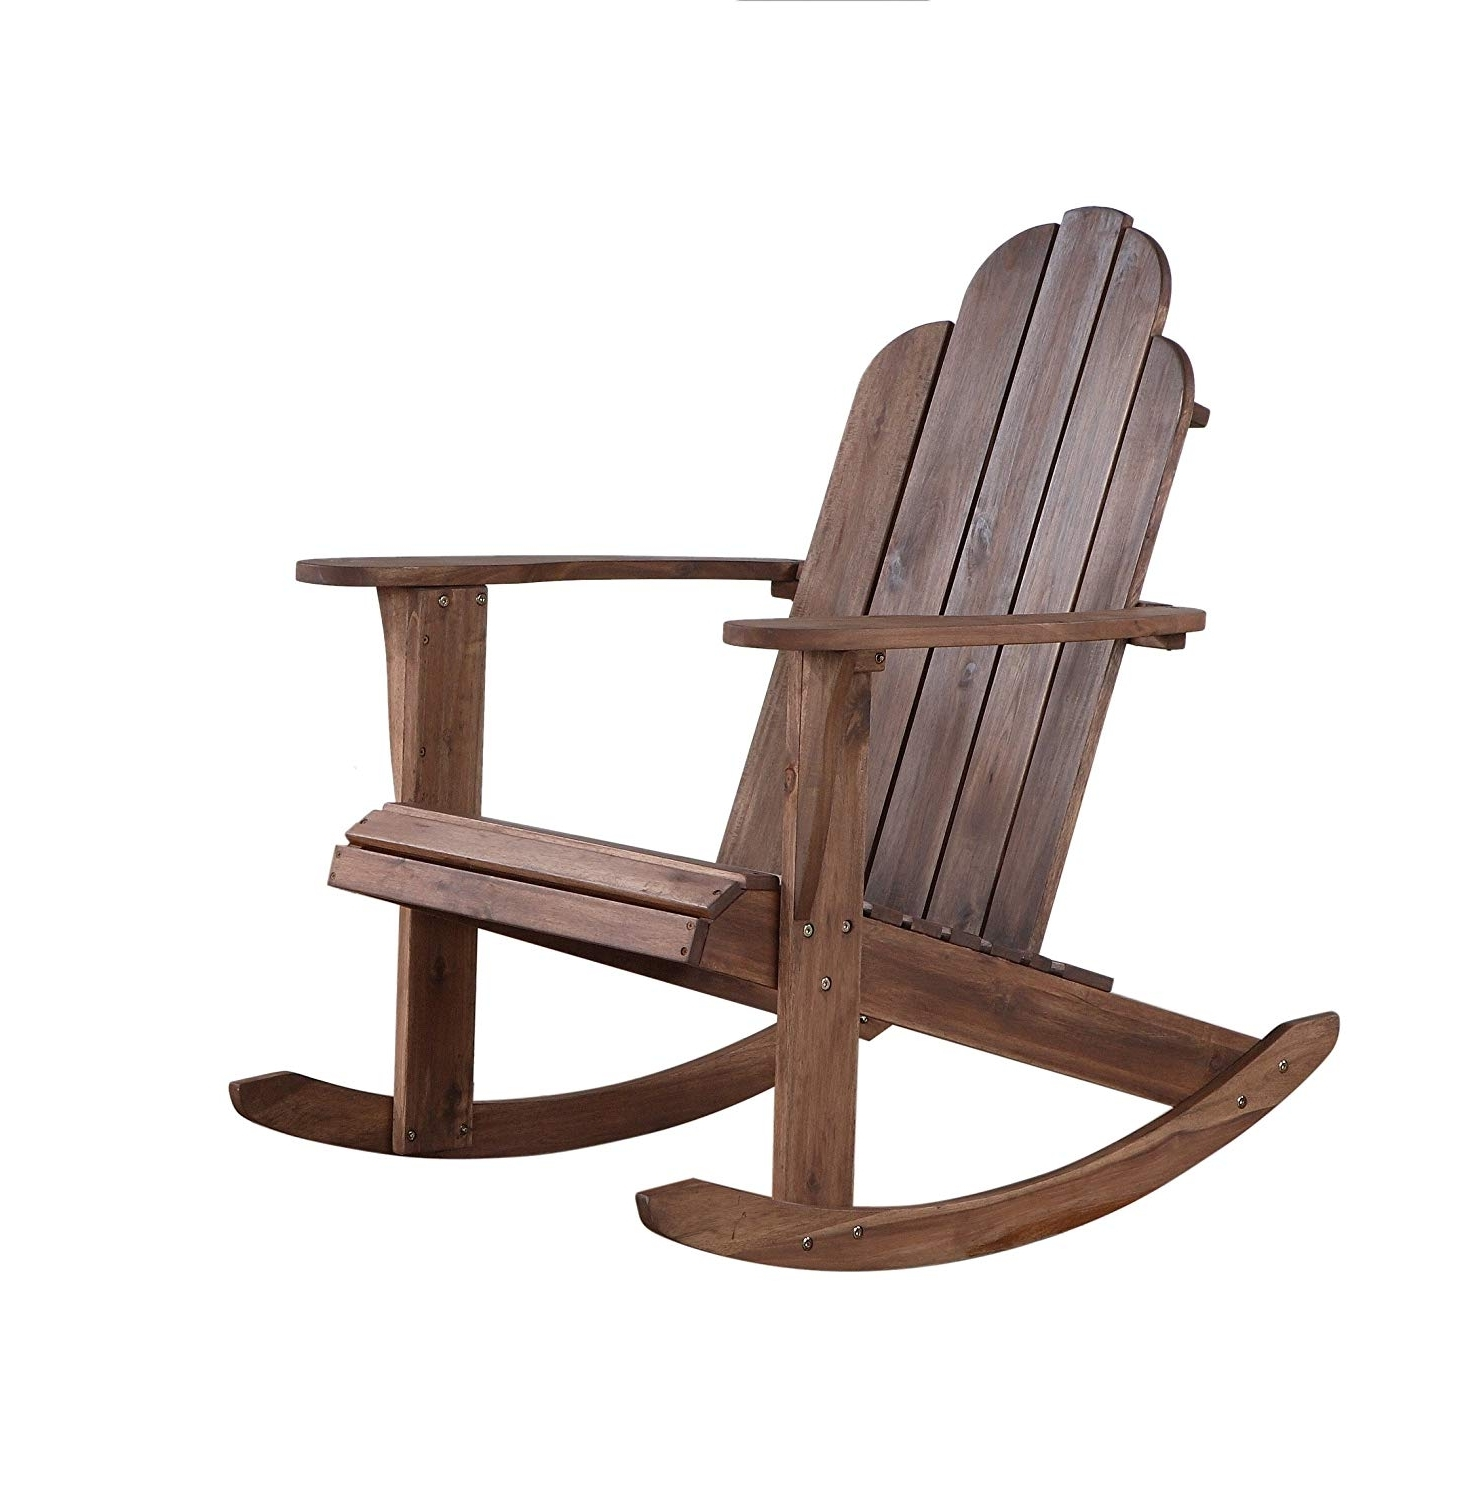 Amazon: Linon Woodstock Rocking Chair, Teak: Kitchen & Dining With Regard To Famous Teak Patio Rocking Chairs (View 14 of 15)